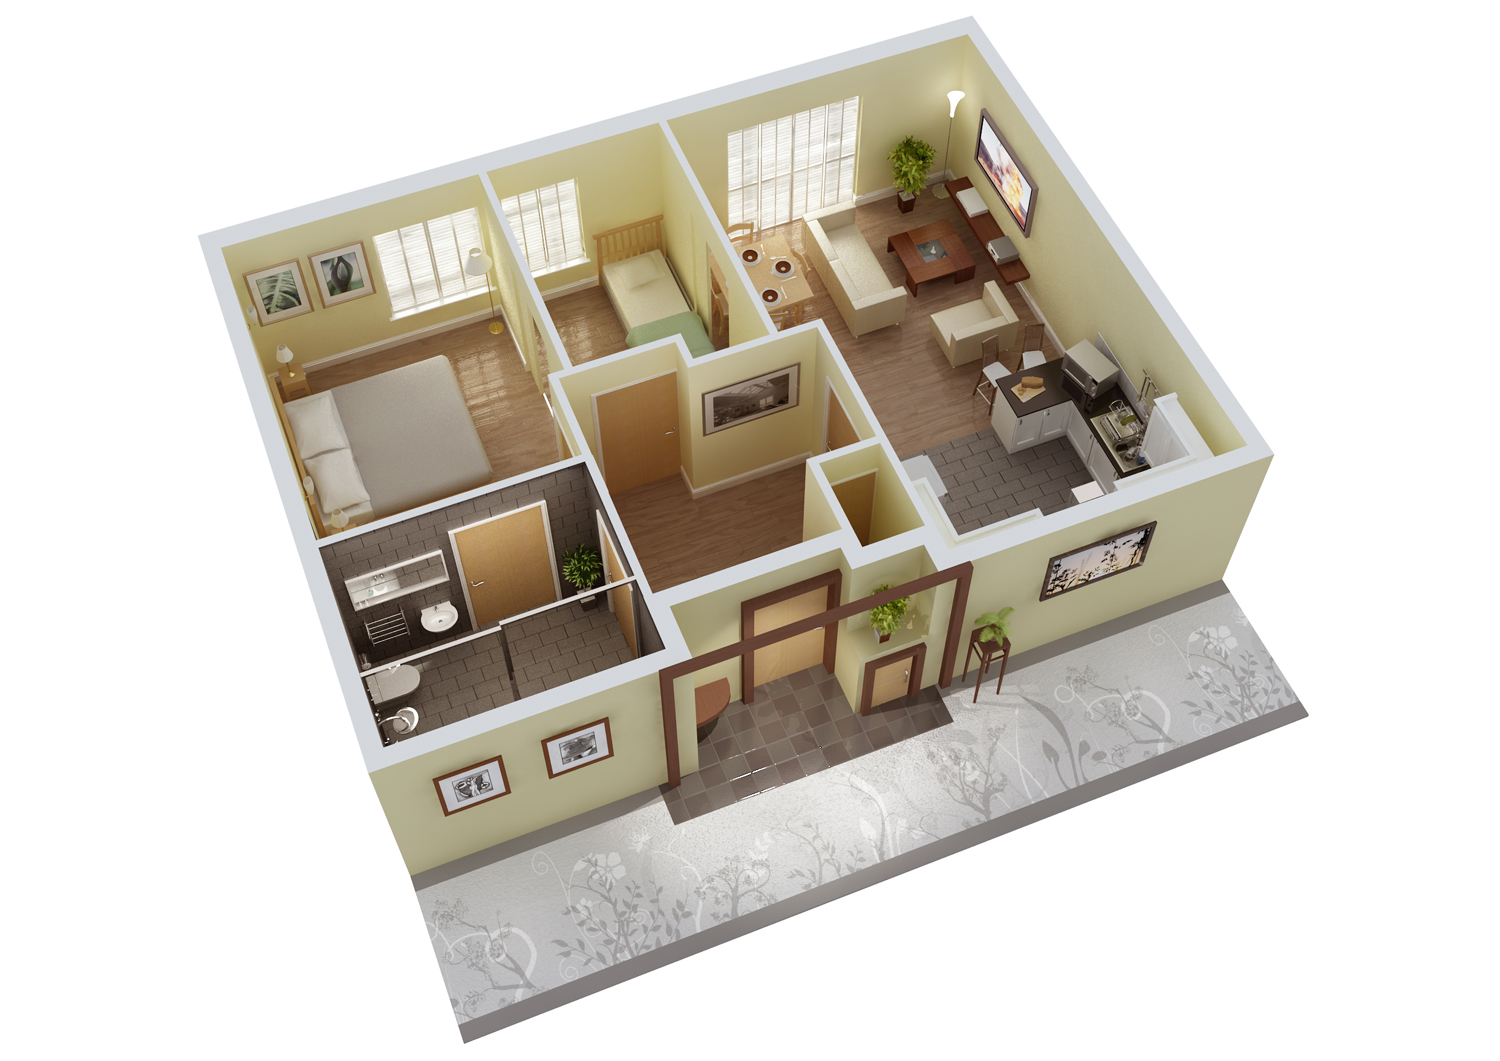 Mathematics resources project 3d floor plan for How to design 3d house plans